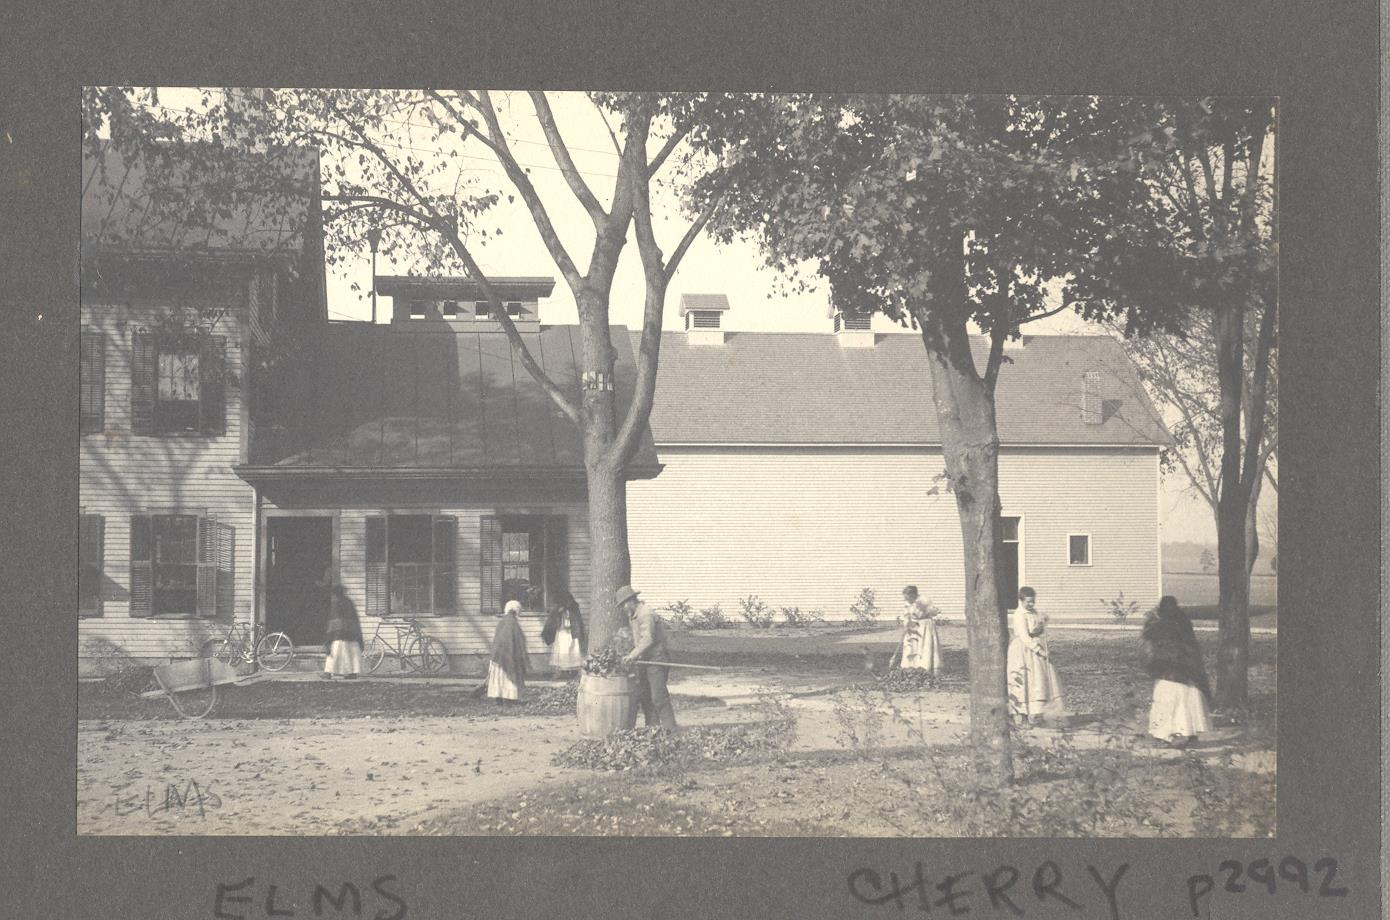 Image of Shaker buildings with men and women raking leaves in yard